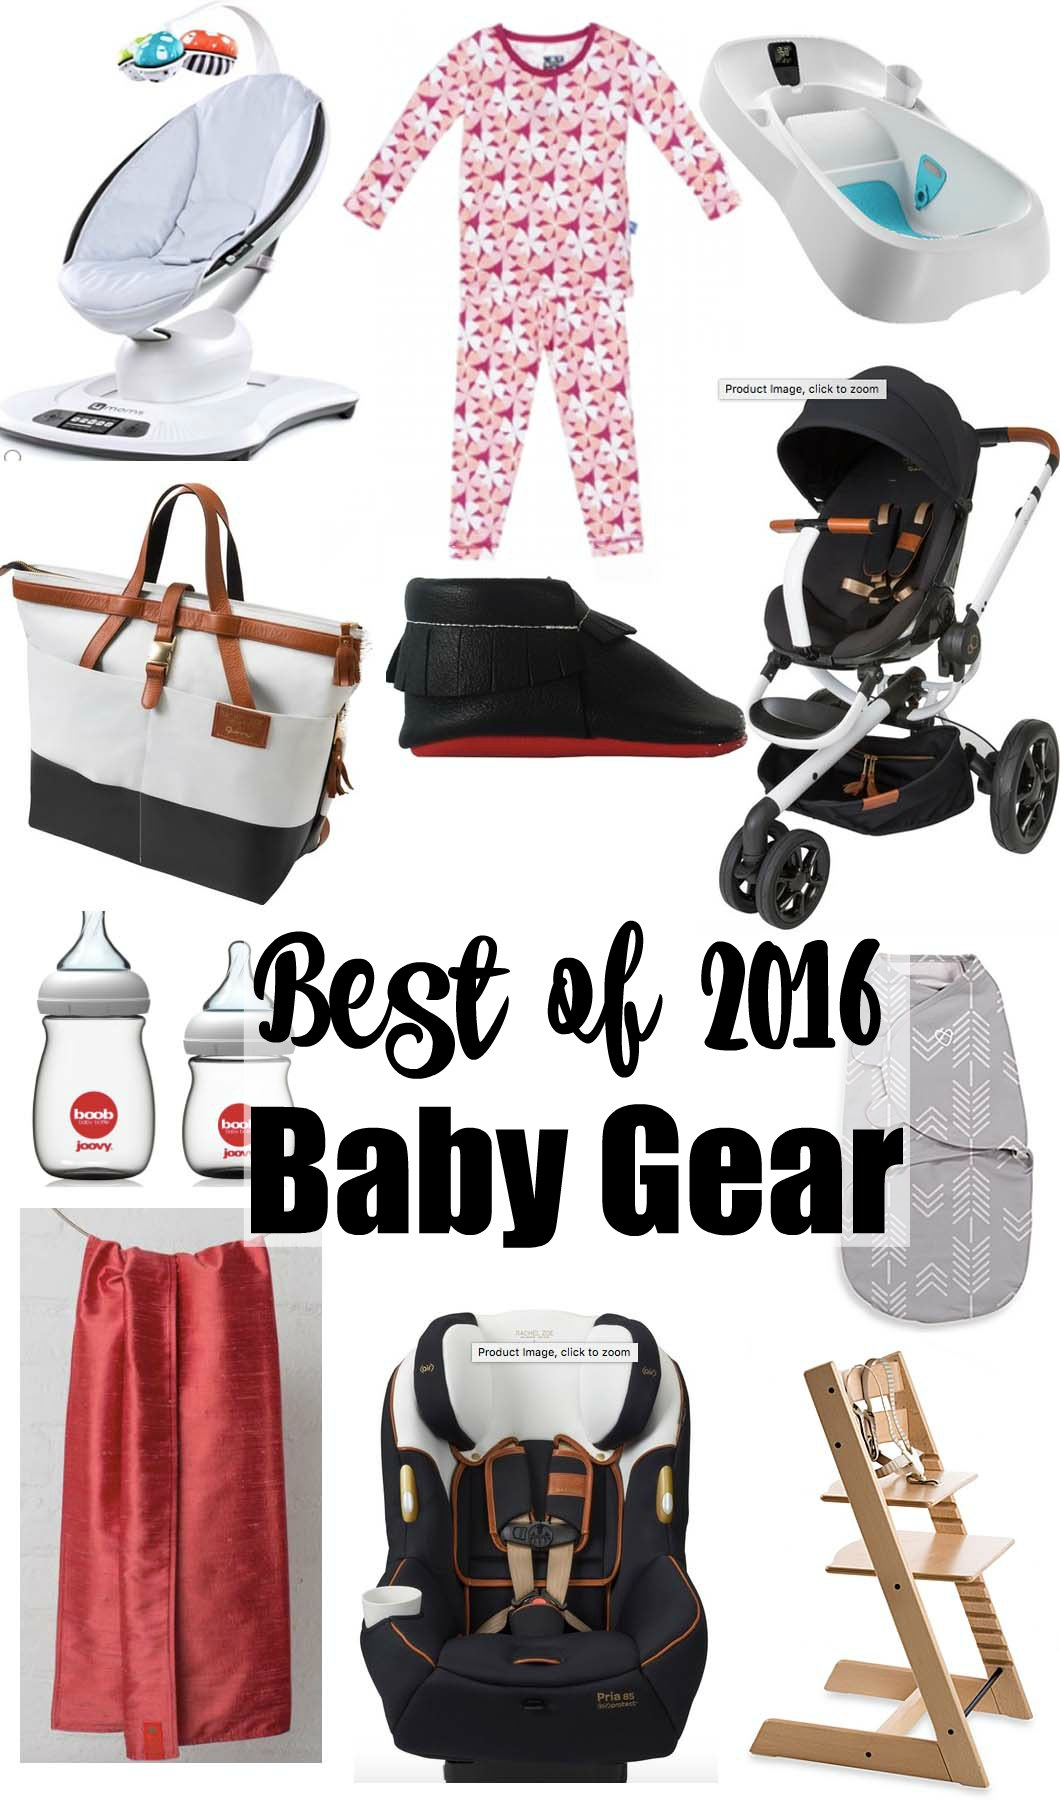 Best of 2016 Maxi Cosi Baby Gear by lifestyle blogger Jessica of Happily Hughes